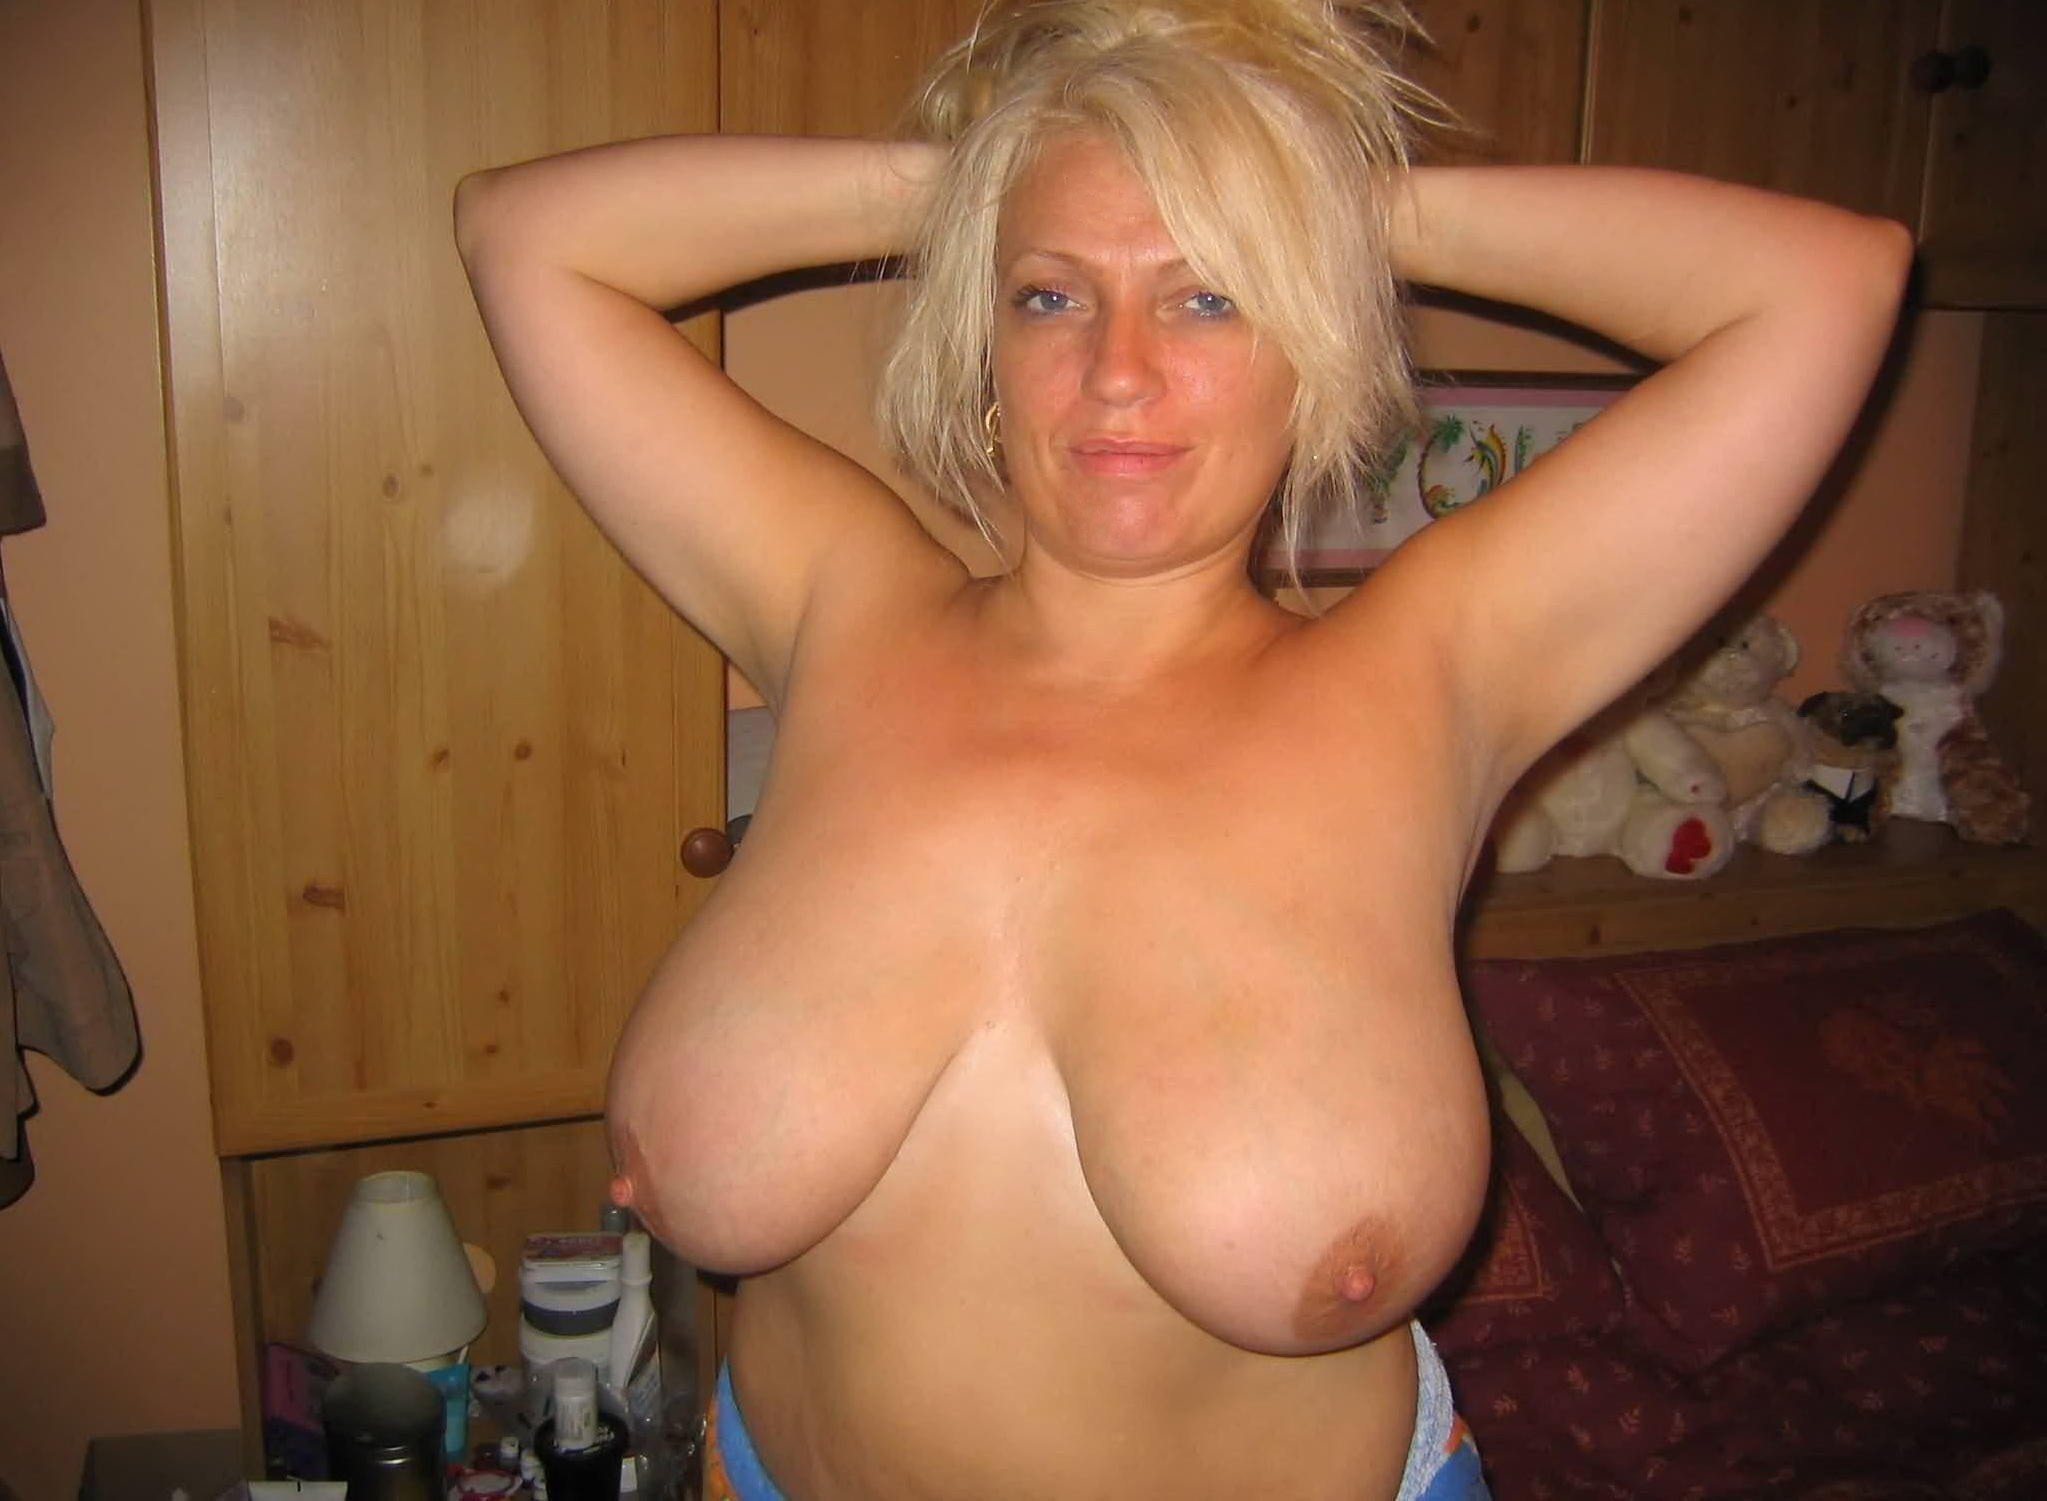 Mary is a depraved mature slut with big tits who love hard sex